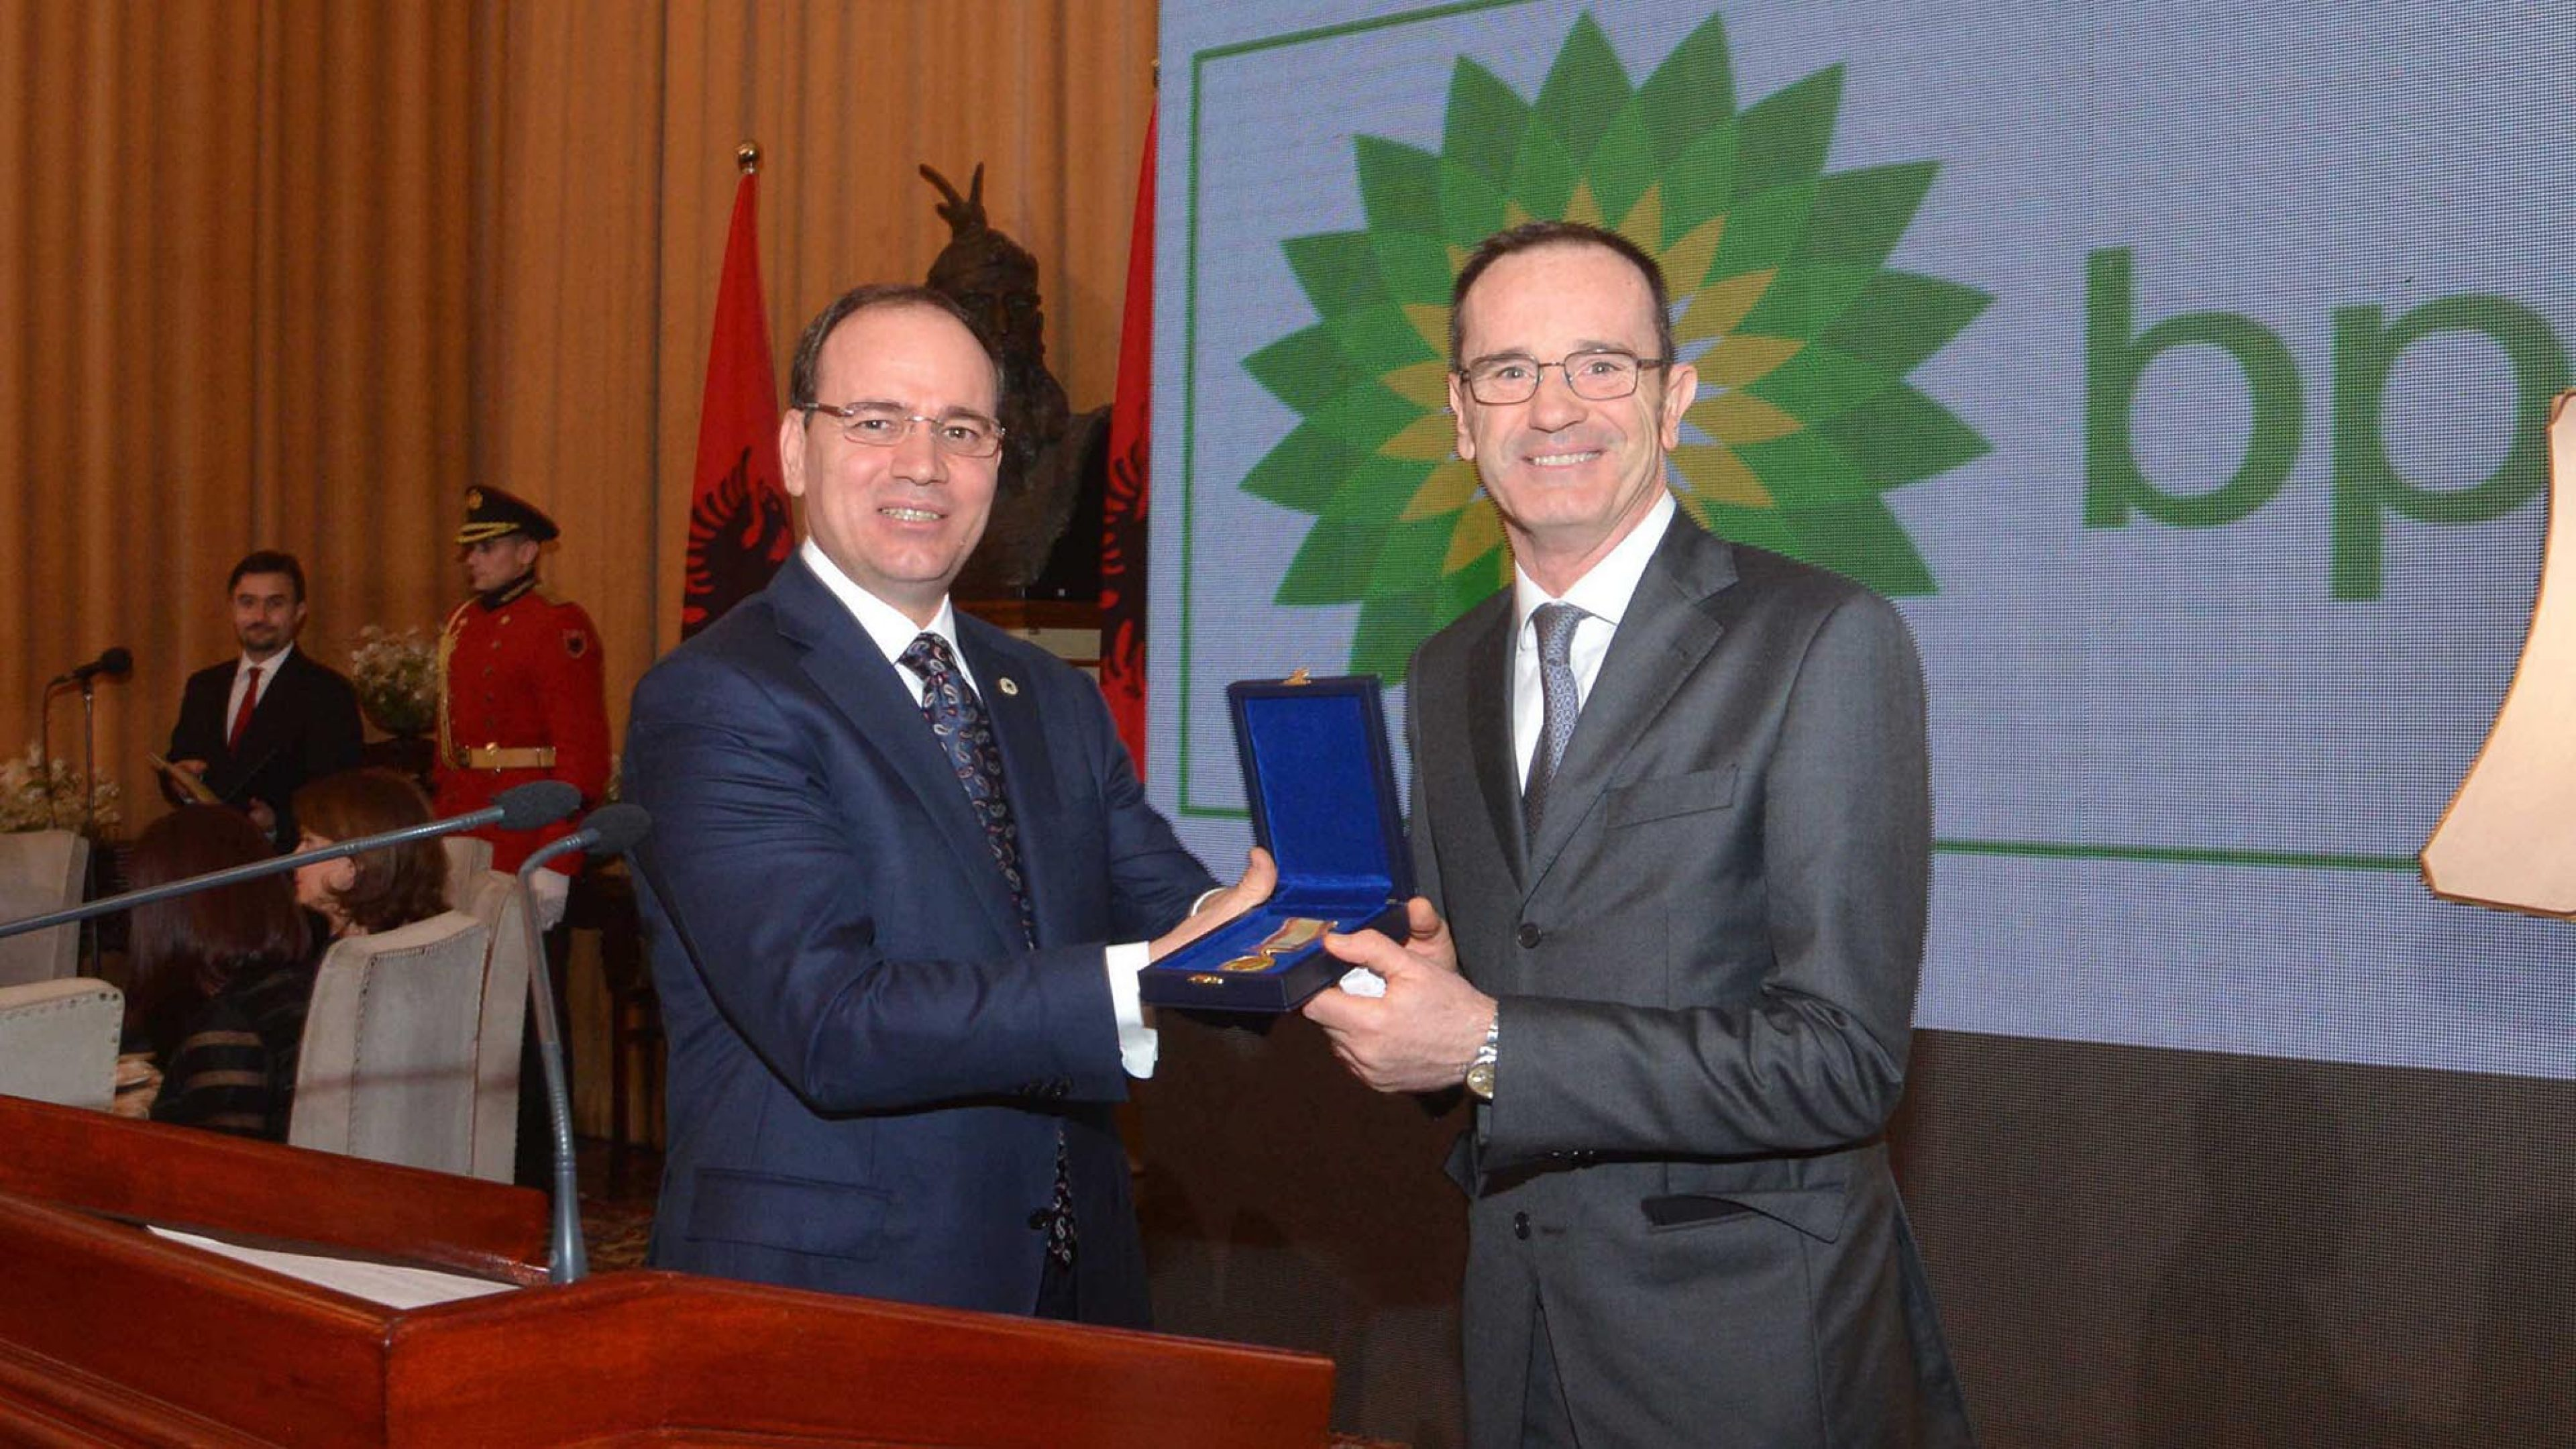 L-R, Fabio Amatucci, Air BP Central Mediterranean Cluster Manager accepts the Award from Mr. Bujar Nishani, President of the Republic of Albania